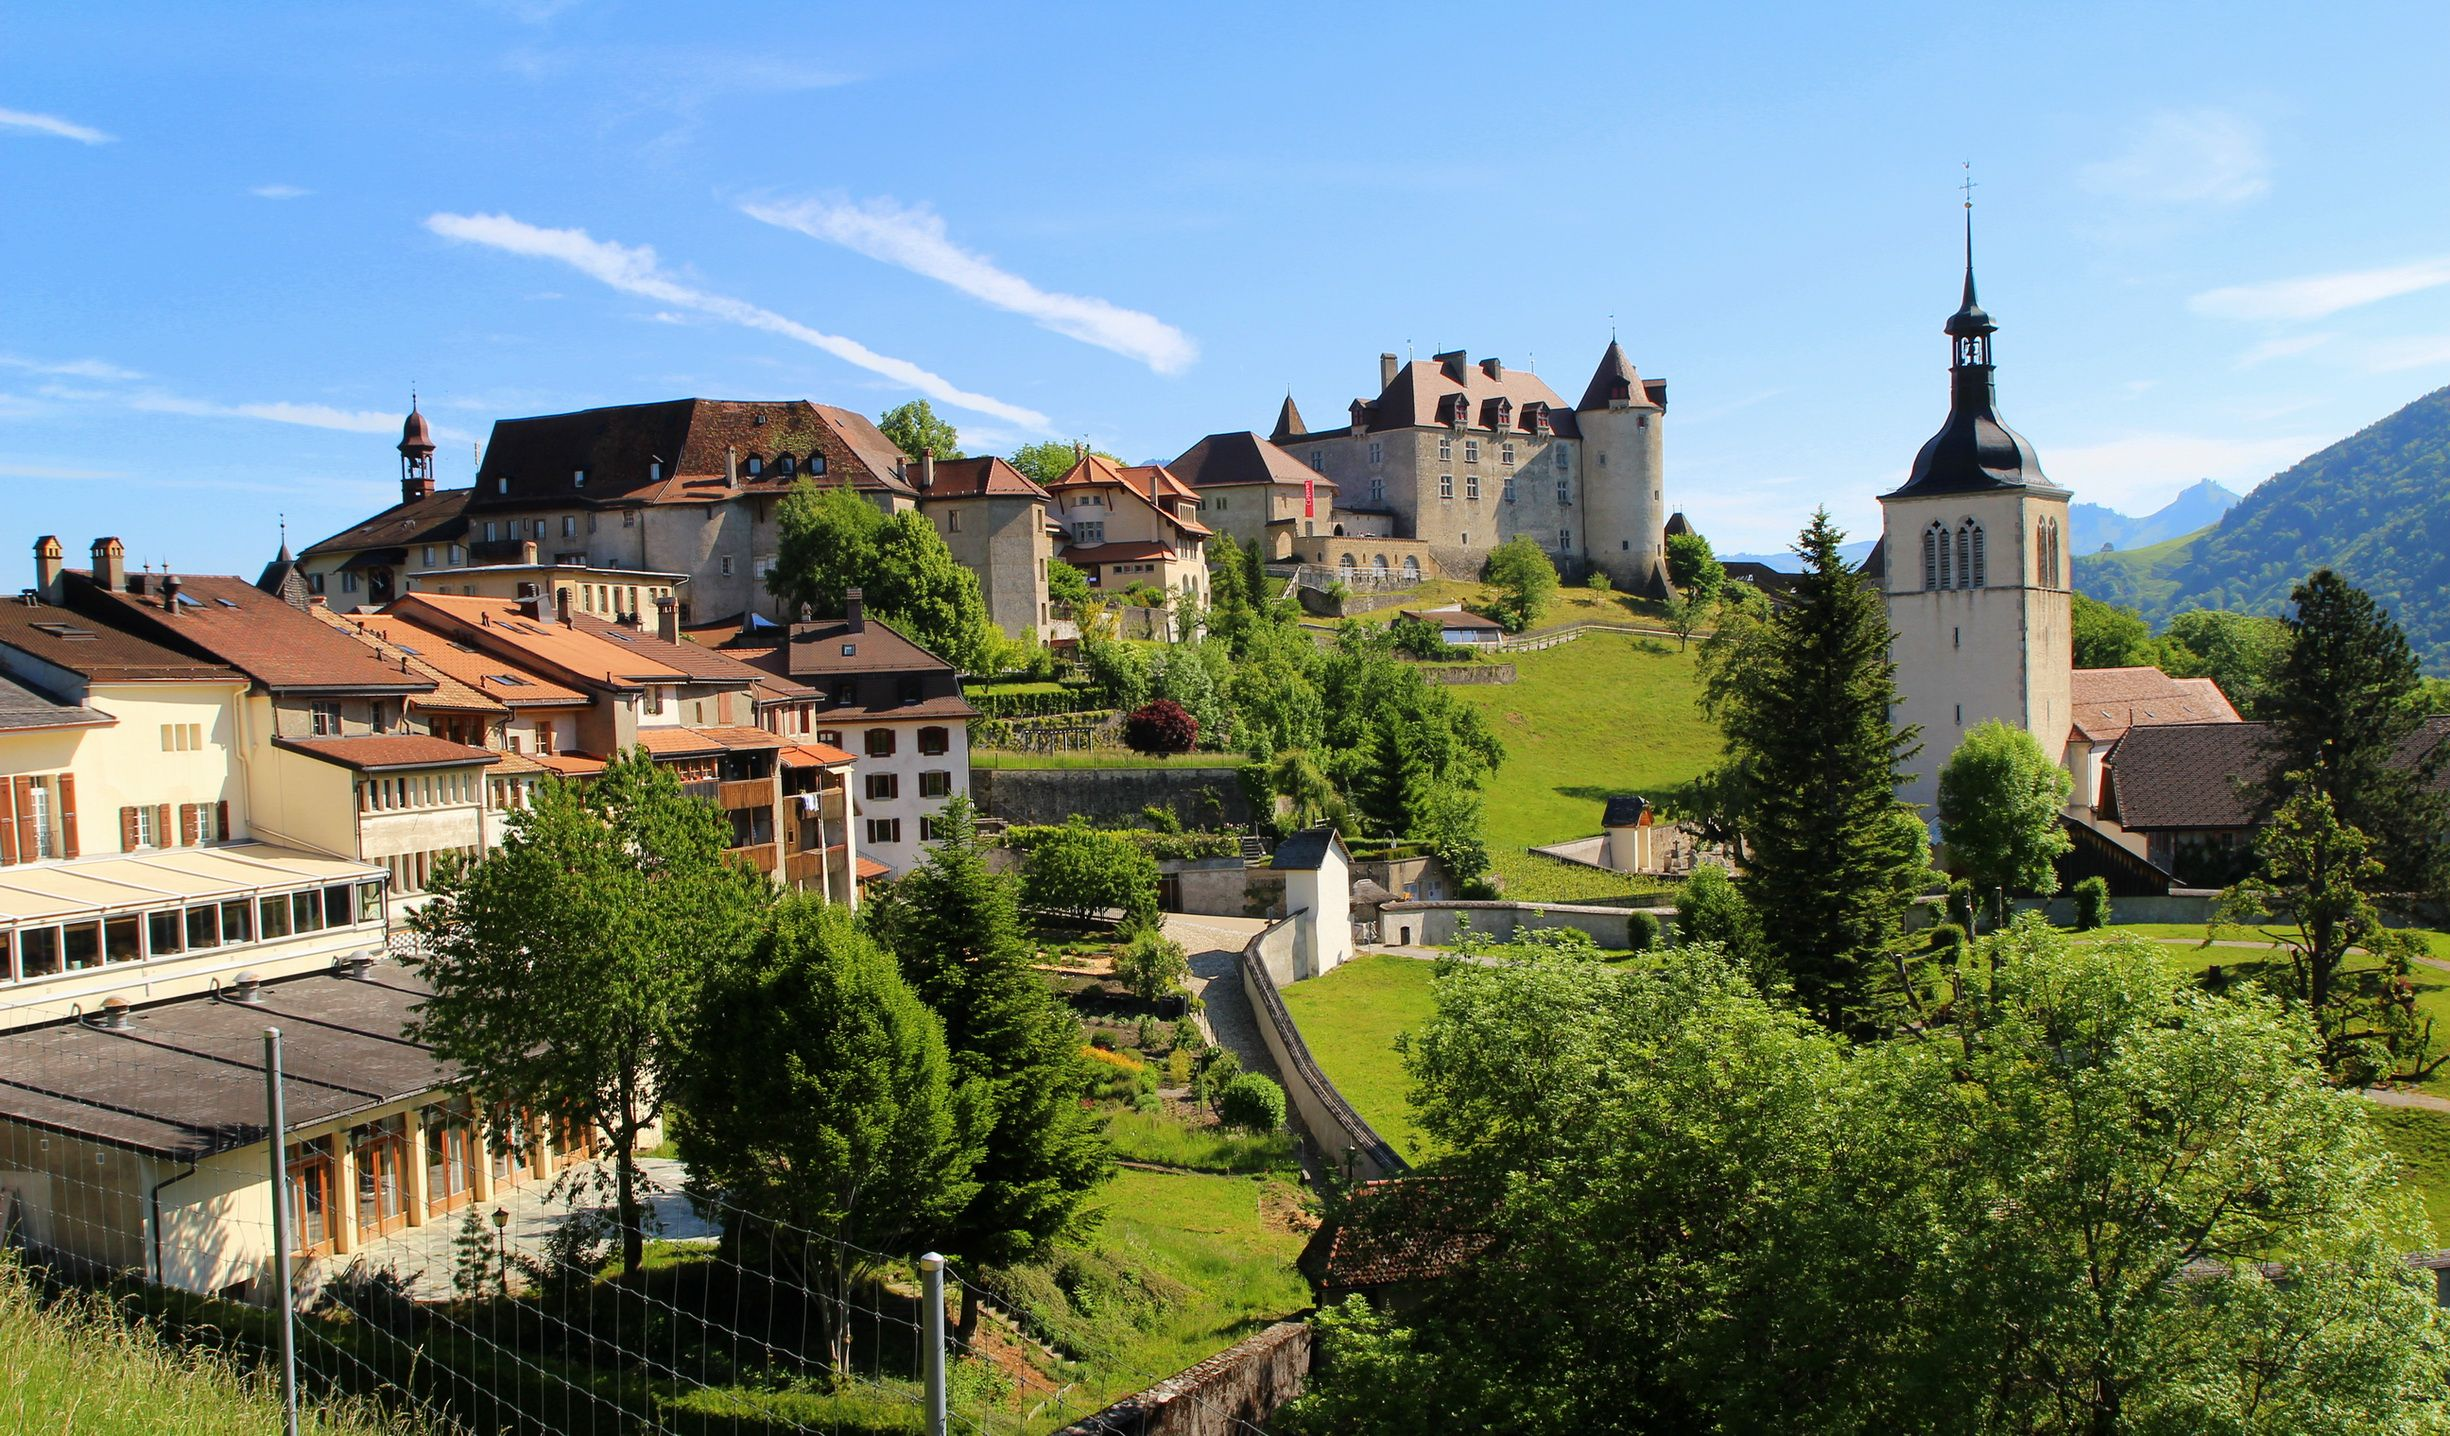 Maison De Gruyere Switzerland Houses Fribourg Gruyere Cities Swiss